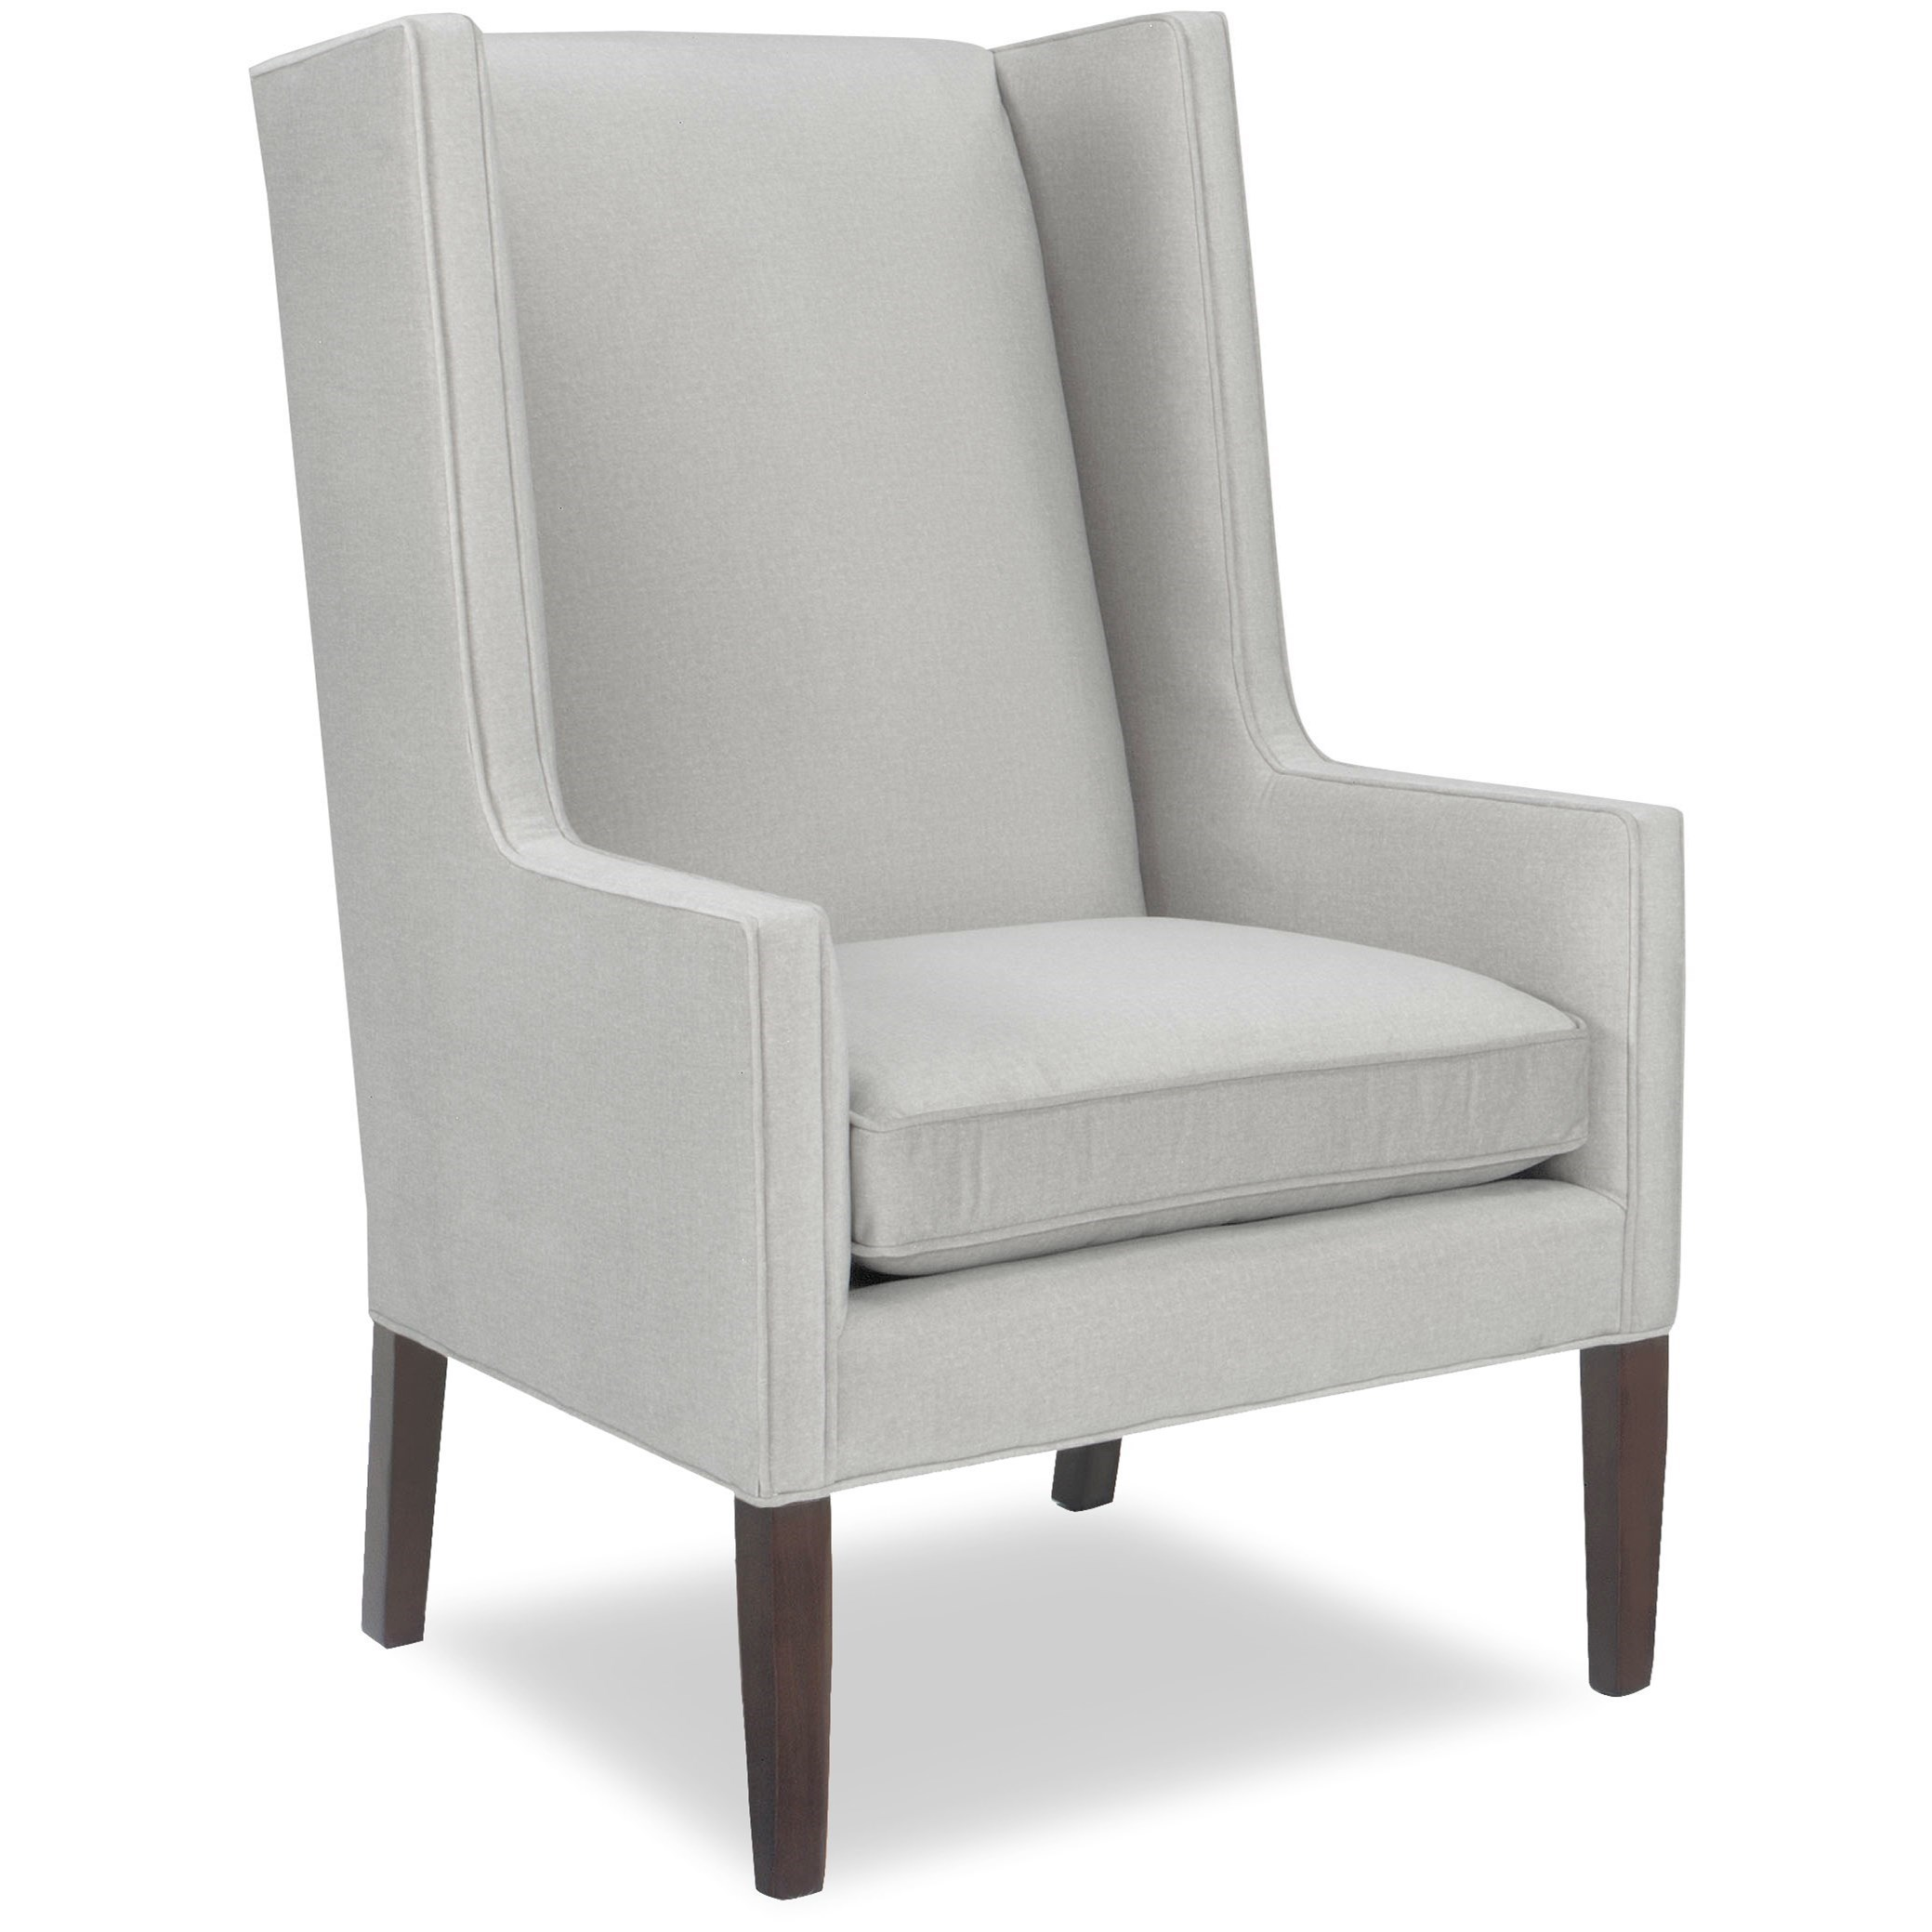 Upholstered Chair with Tapered Wood Legs